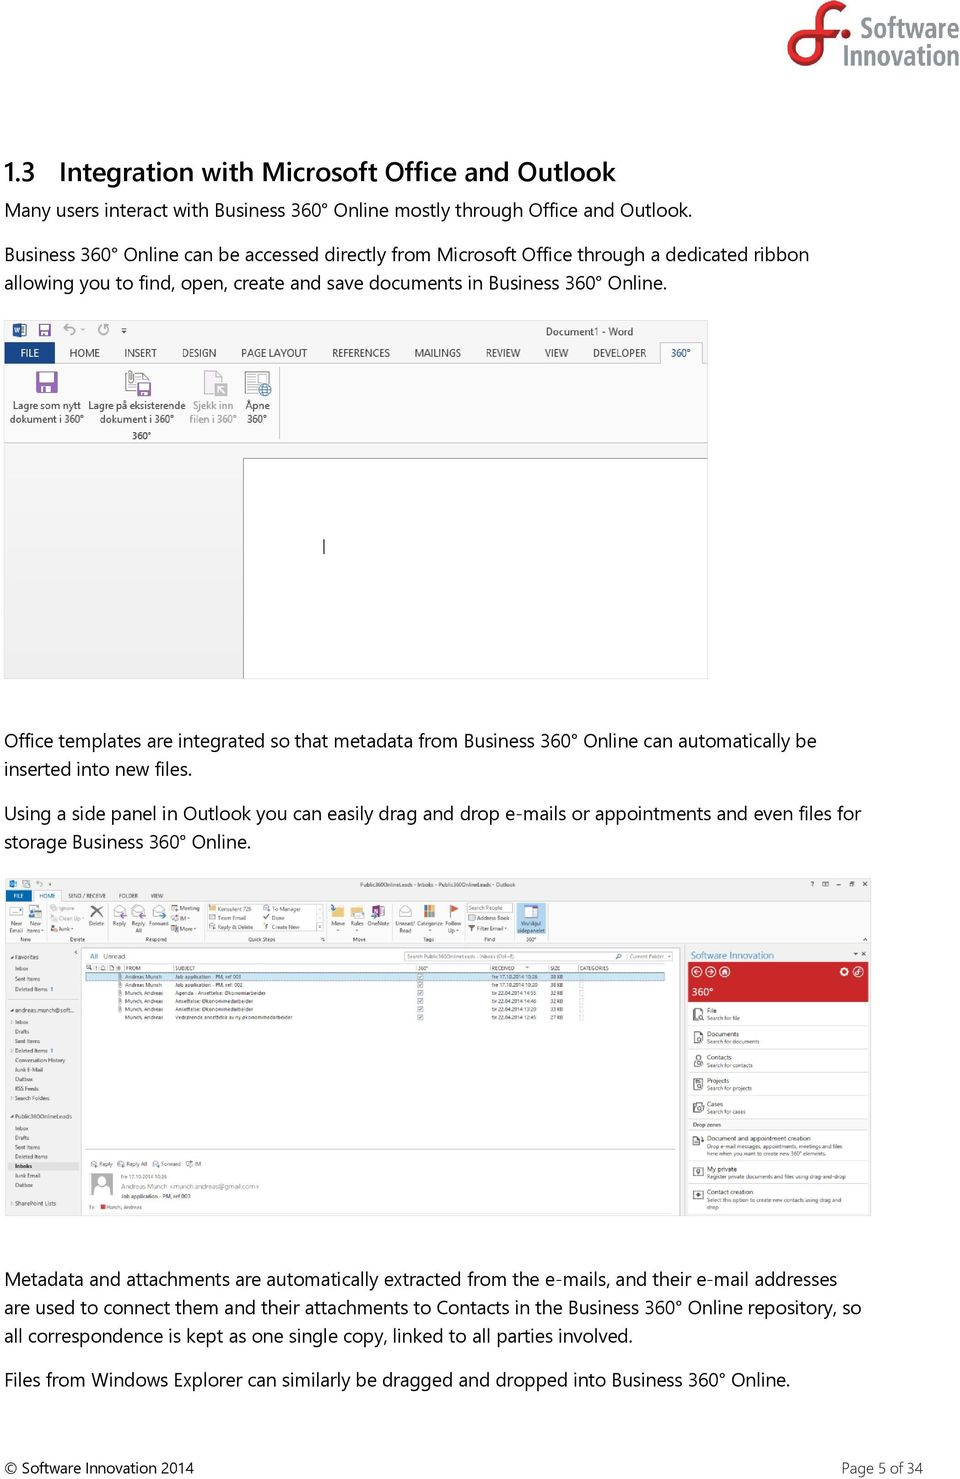 Office templates are integrated so that metadata from Business 360 Online can automatically be inserted into new files.